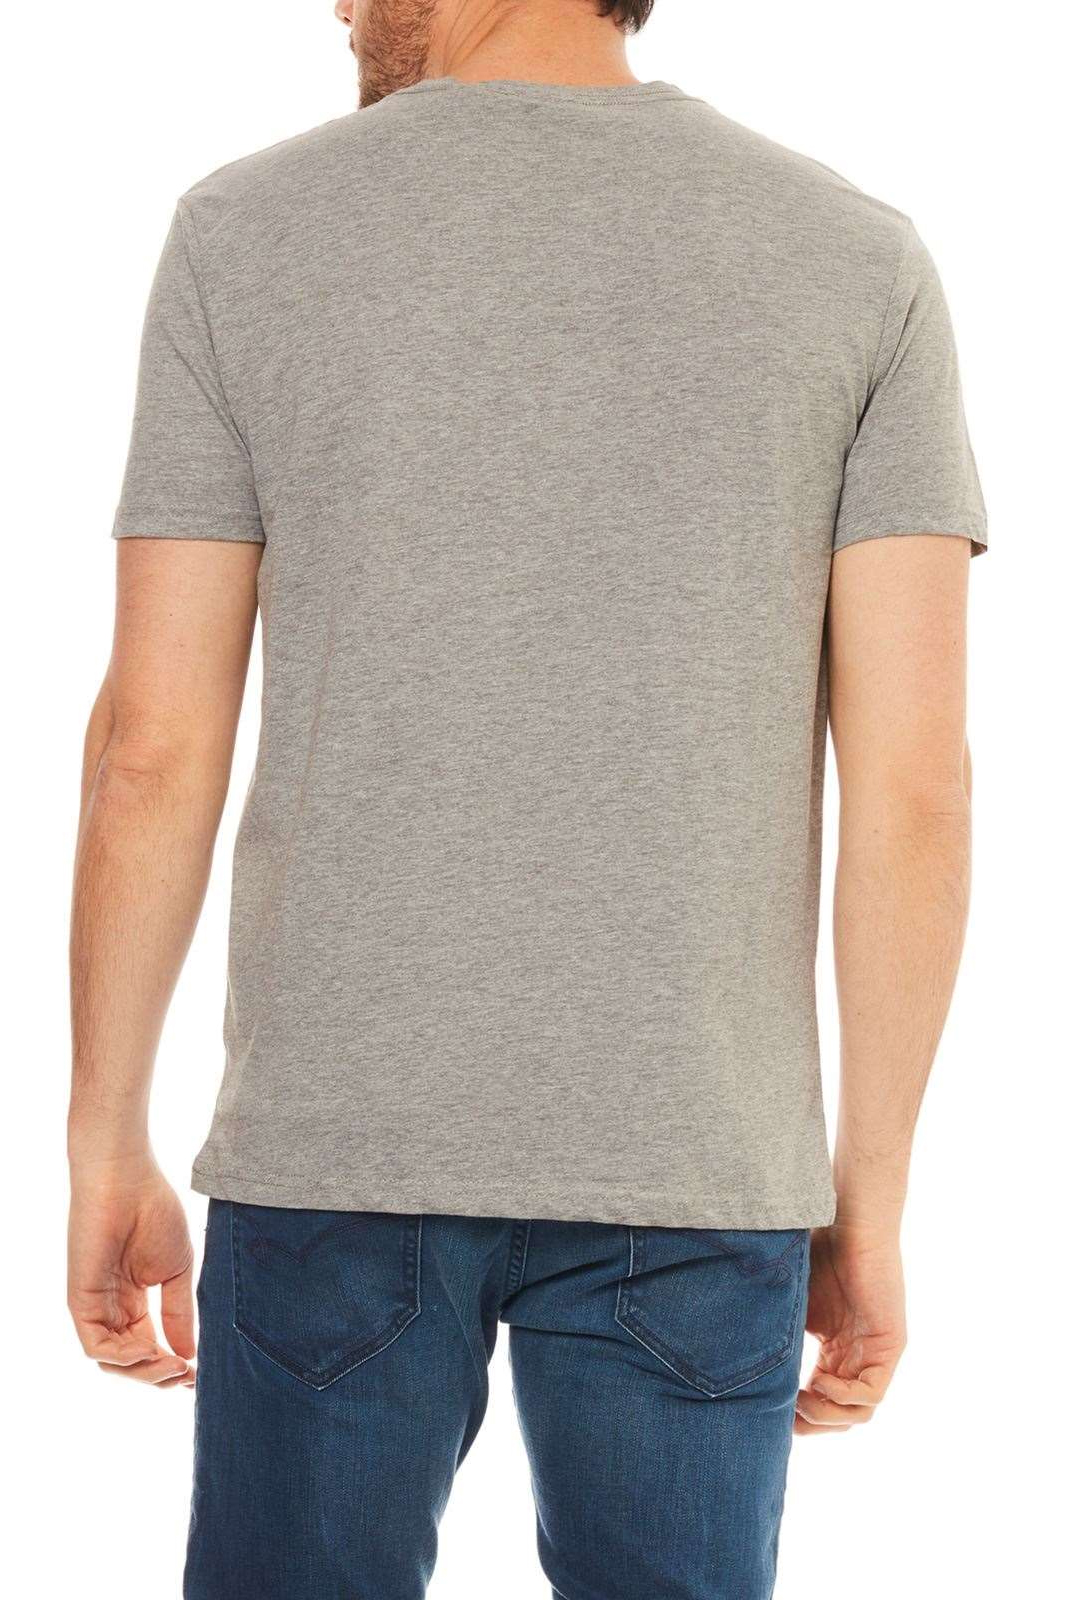 Tee-shirts  Kaporal POGGO MEDIUM GREY MEL